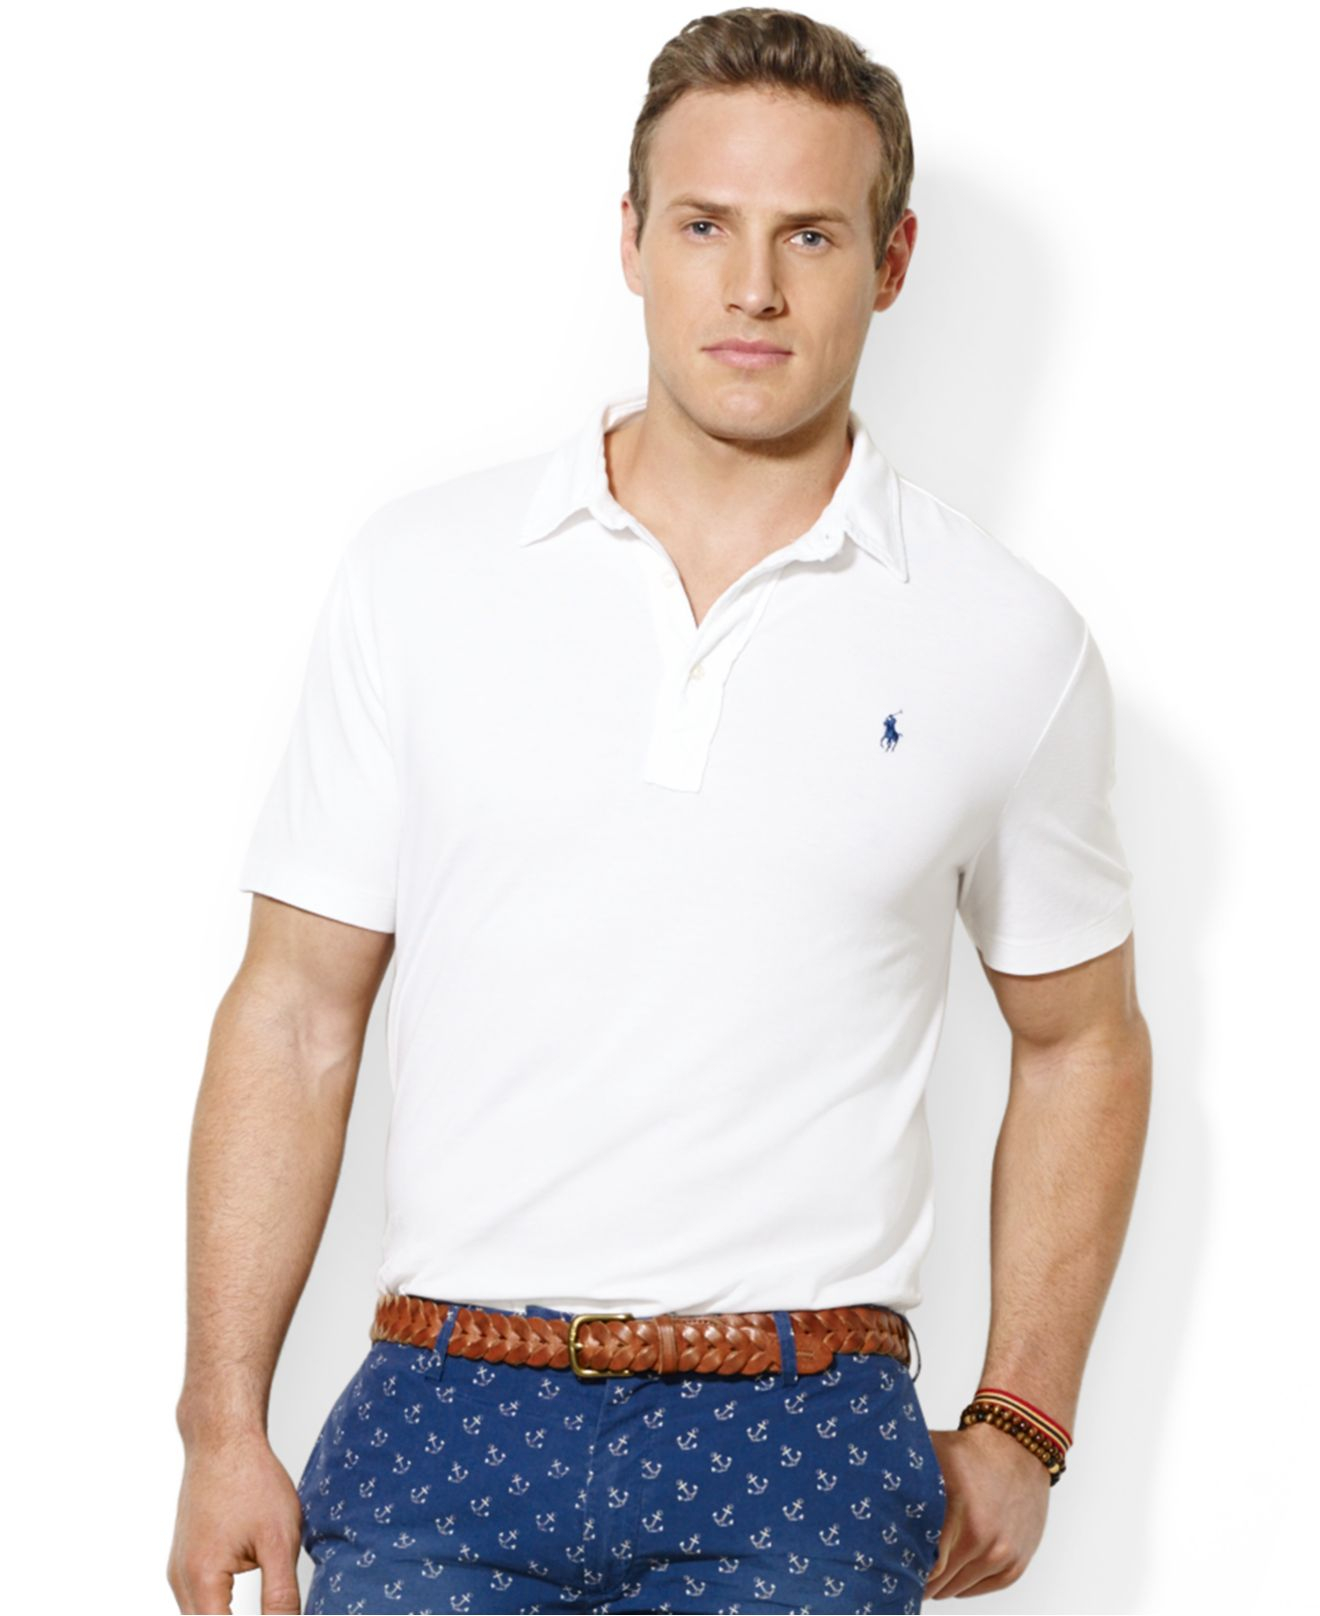 e1aa0847fb5 Lyst - Polo Ralph Lauren Polo Big and Tall Solid Featherweight Mesh ...